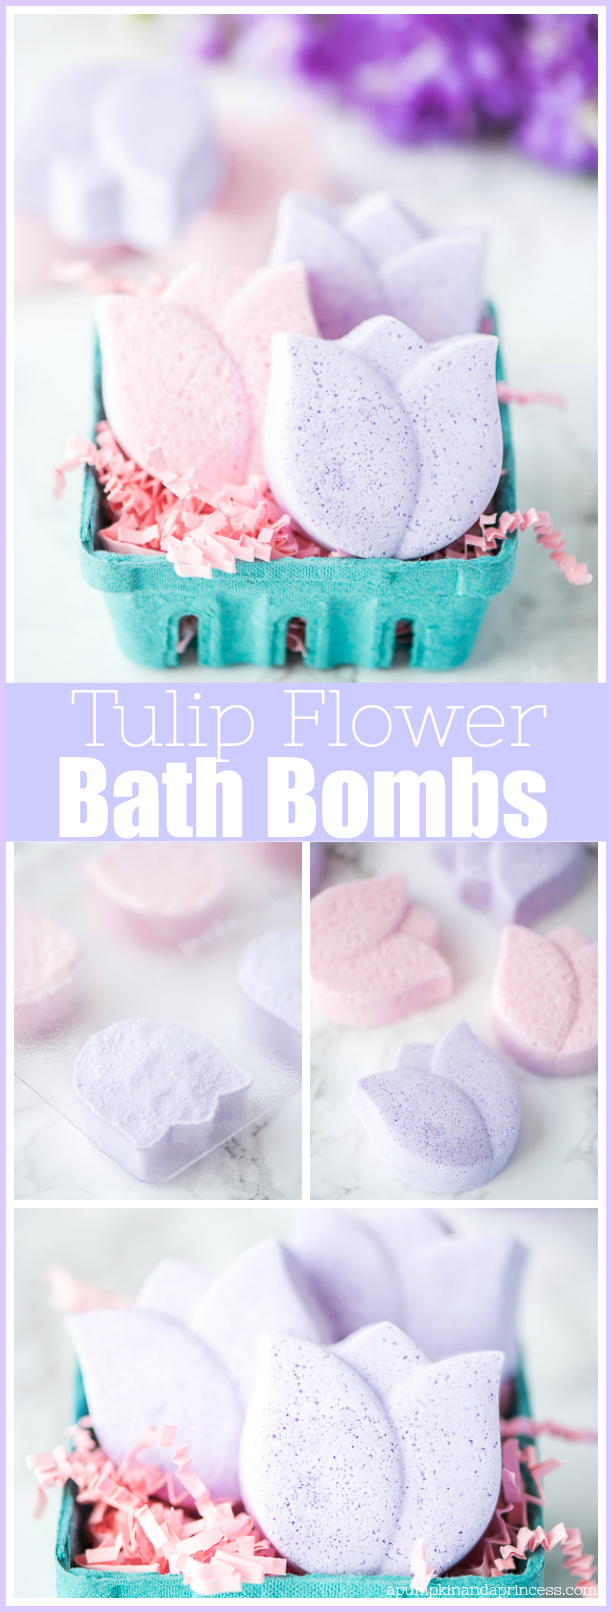 Tulip Bath Bombs – how to make tulip flower shaped bath bombs with moisturizing coconut oil and lavender essential oil.